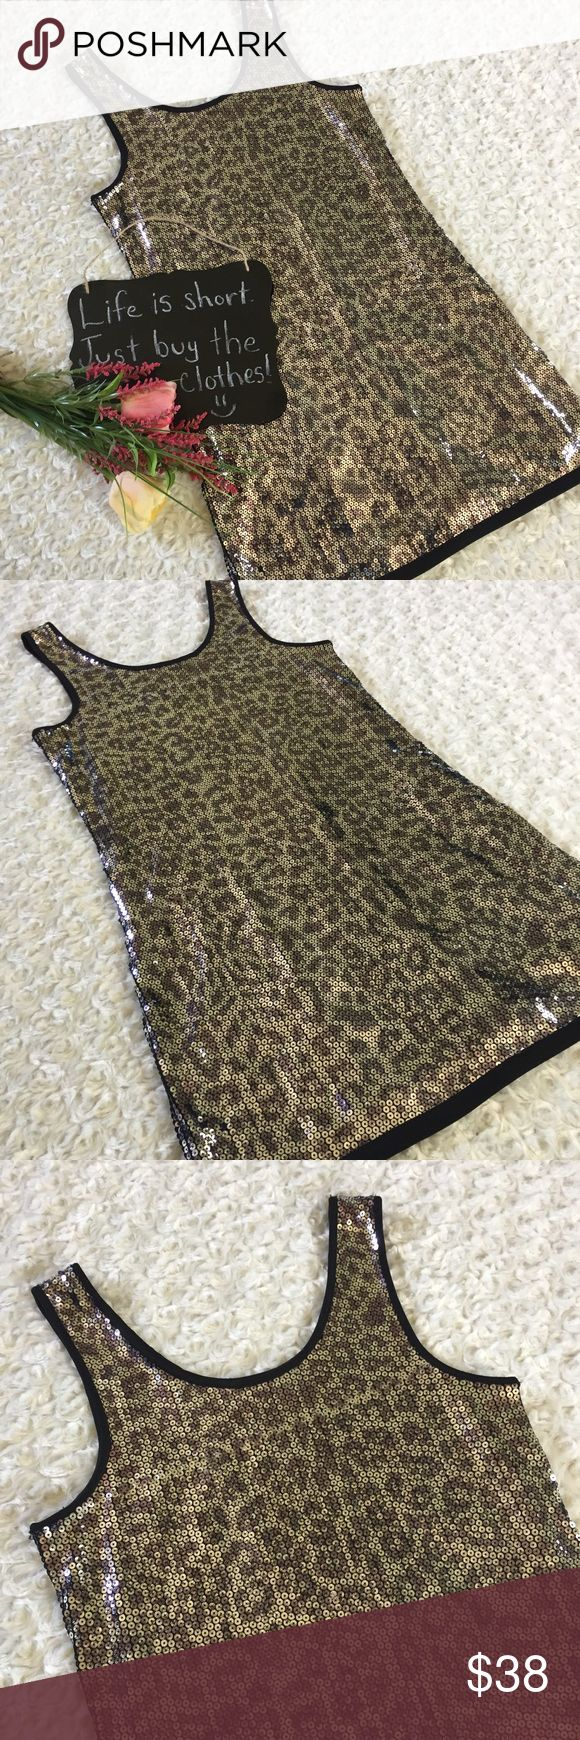 """Romeo and Juliet Couture sequin dress Very fun sequin animal print dress by Romeo and Juliet Couture!! In person it's a bit more Silver bc of the sequins. Size M. 16"""" arm pit to arm pit. 31.5"""" length. Romeo & Juliet Couture Dresses Mini"""